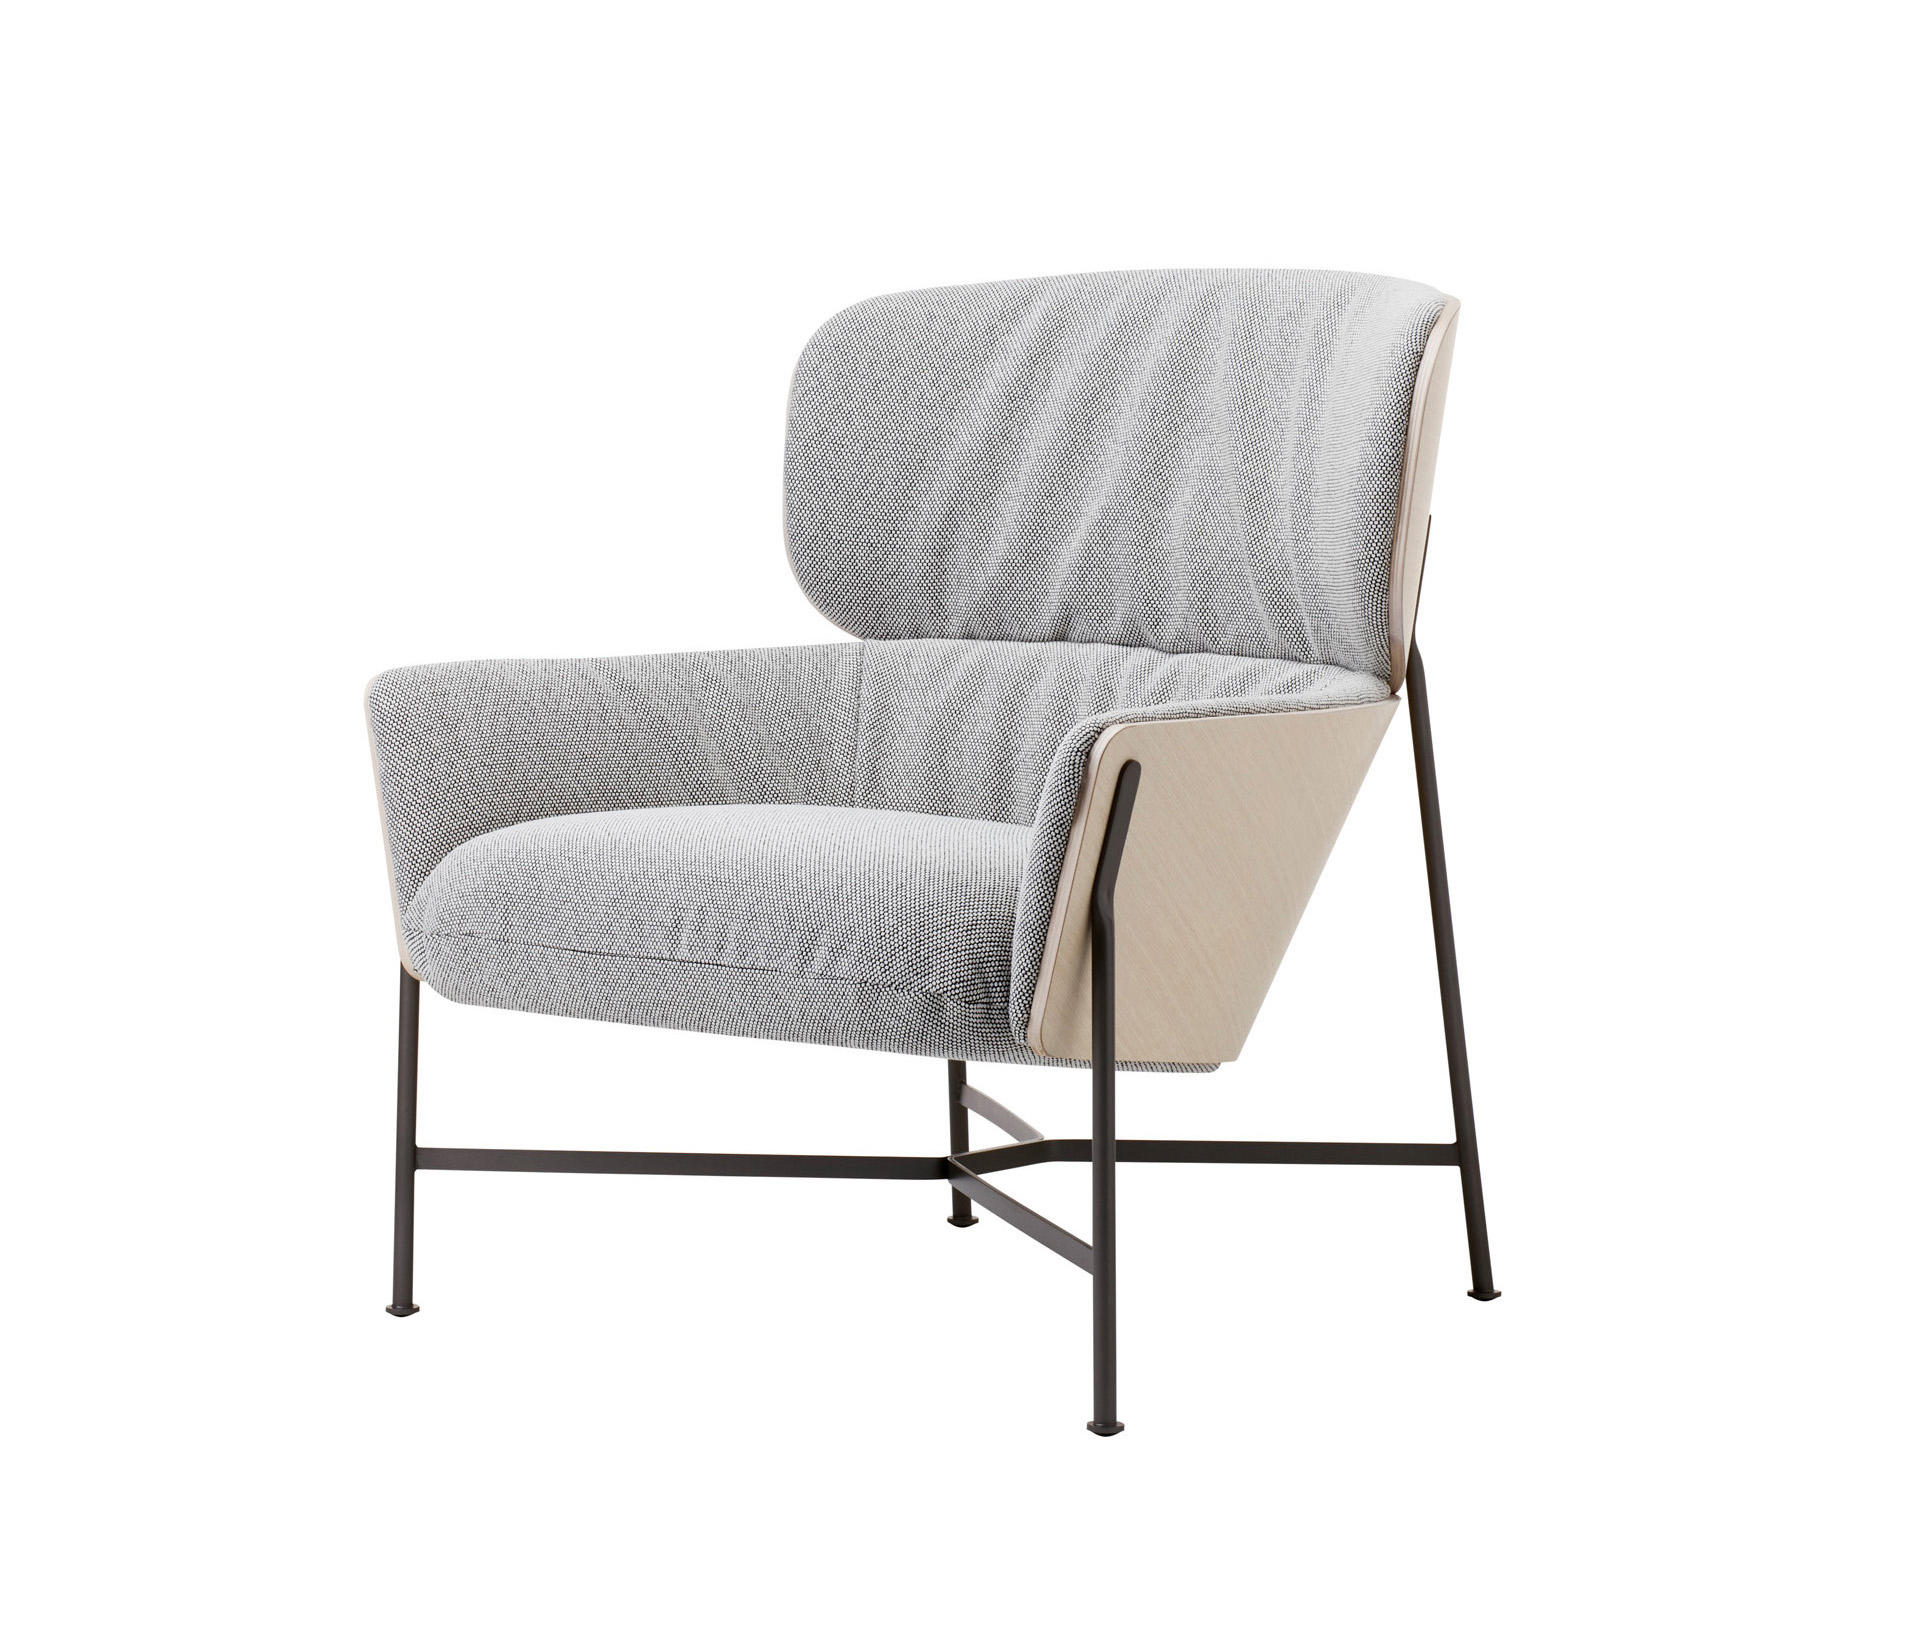 Caristo low back armchair by sp01 armchairs